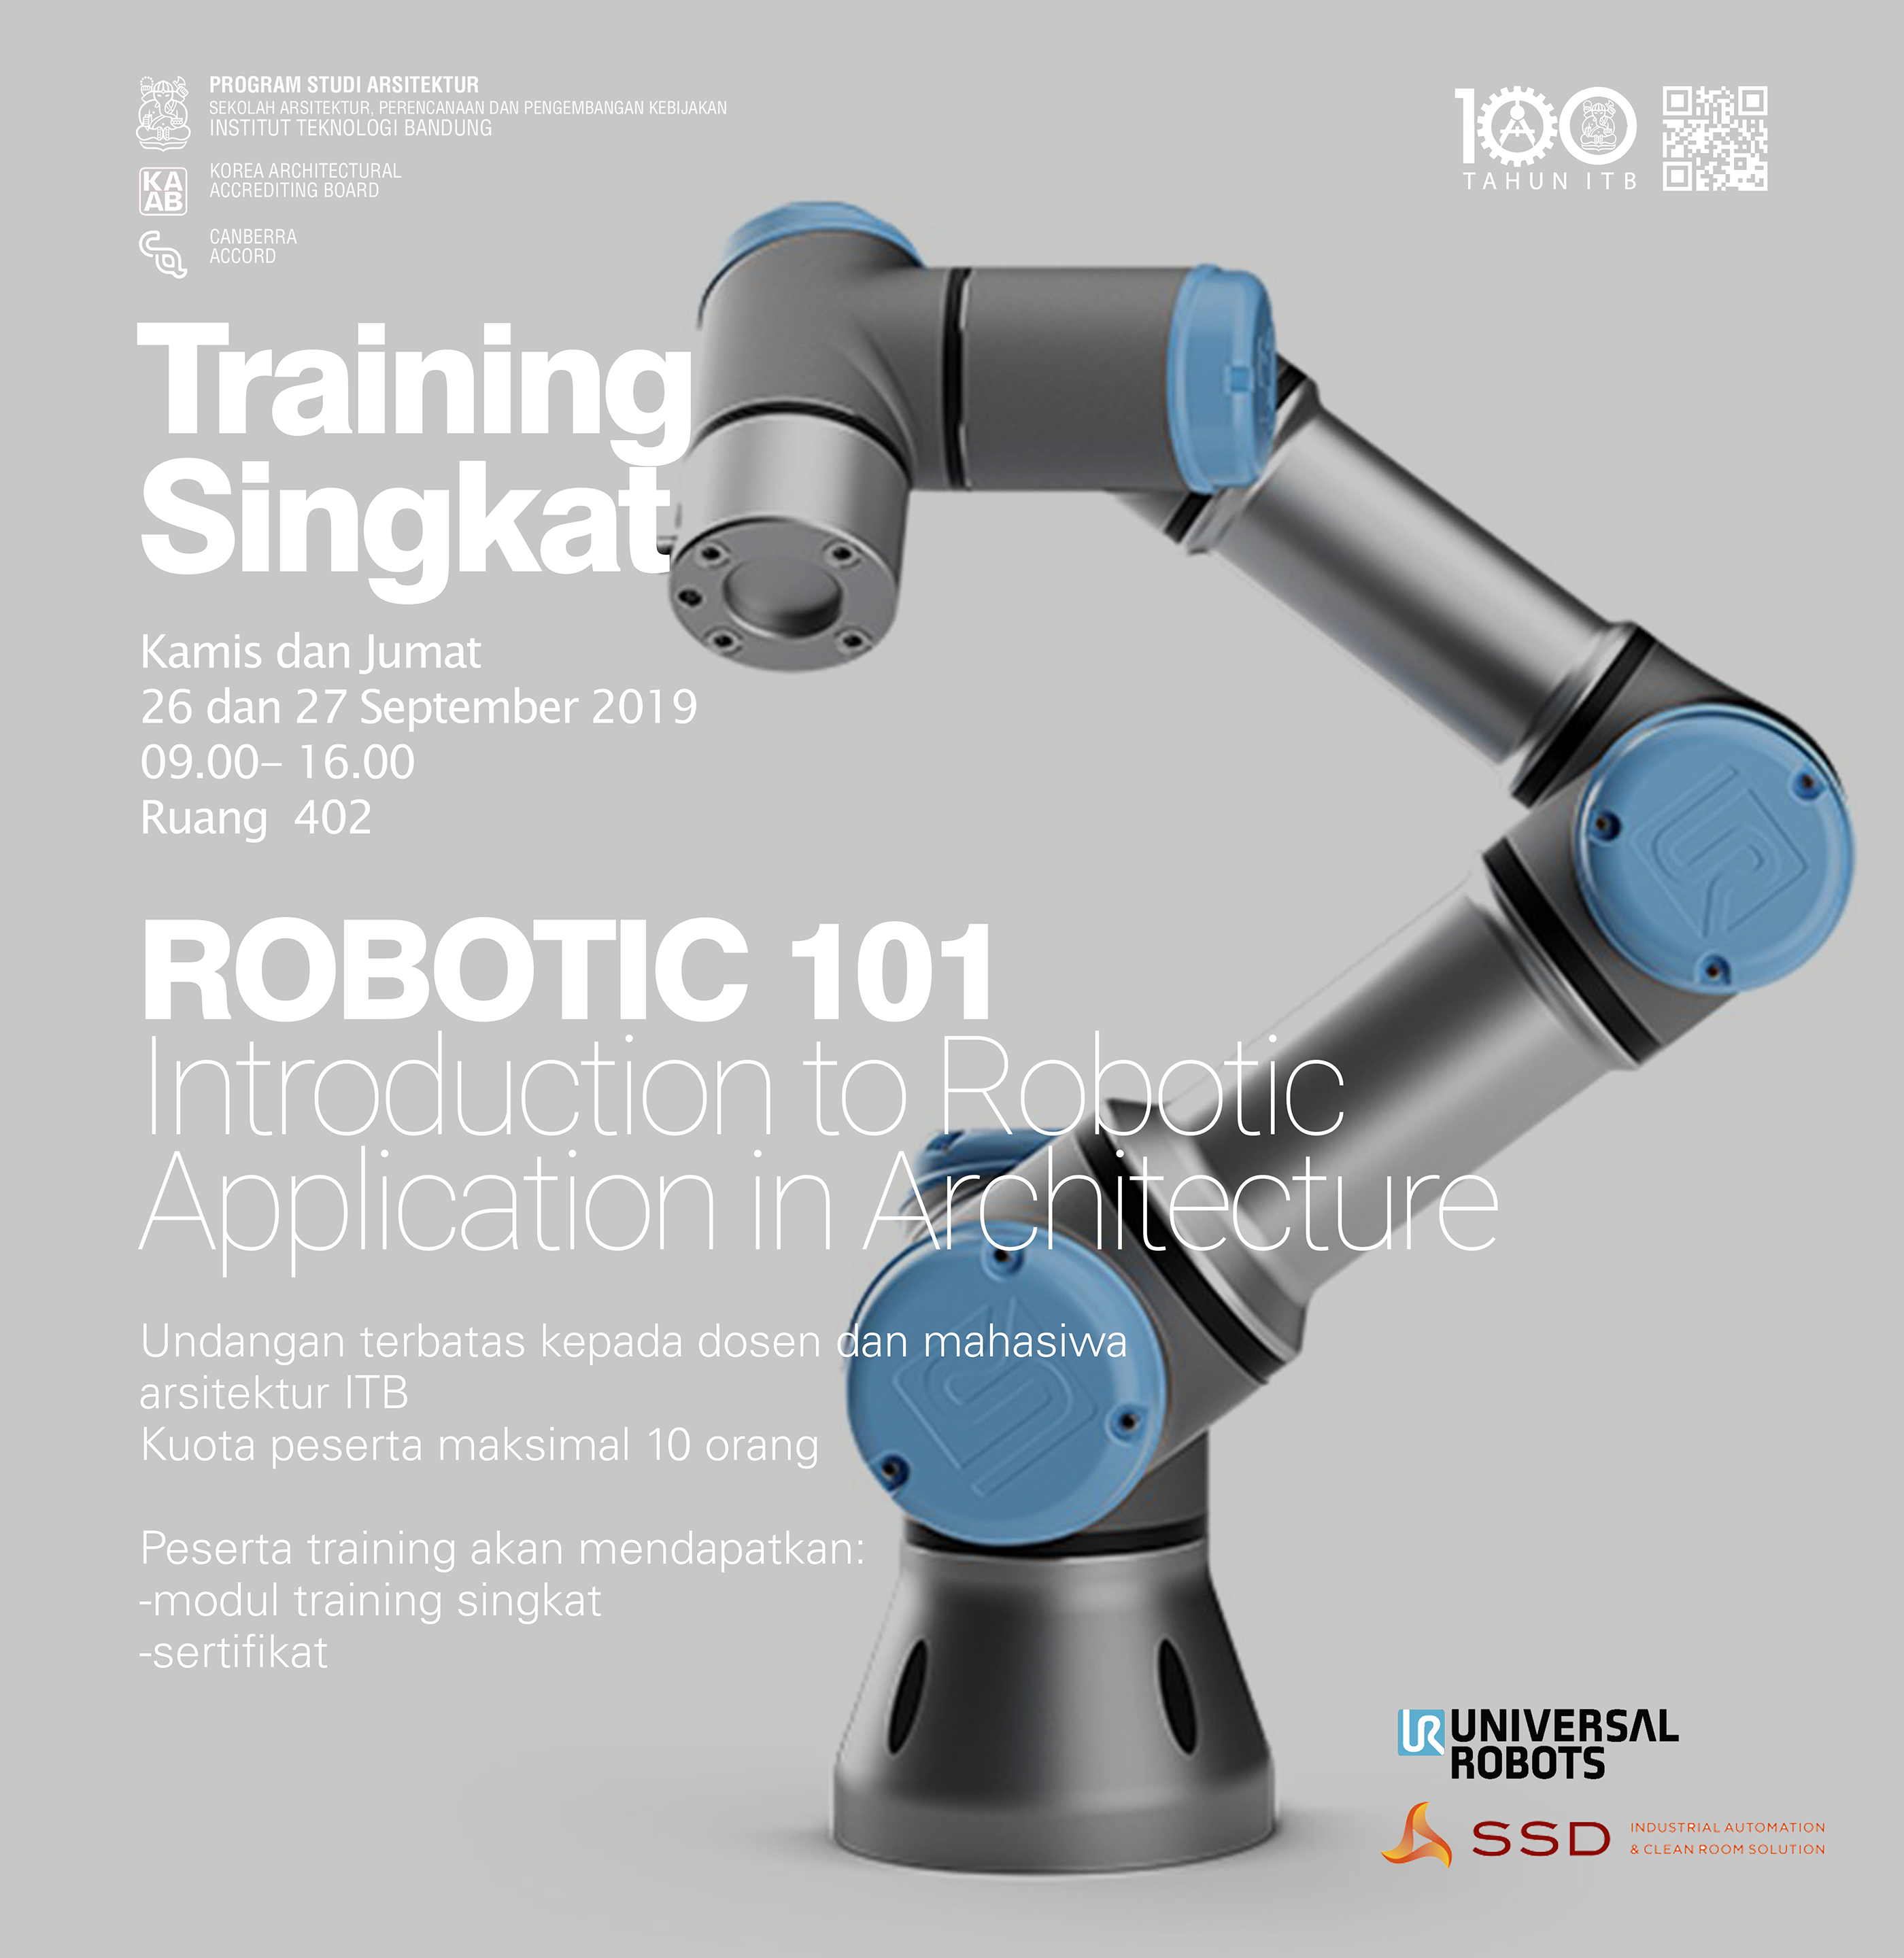 Training Singkat Robotic 101: Introduction to Robotic Application in Architecture